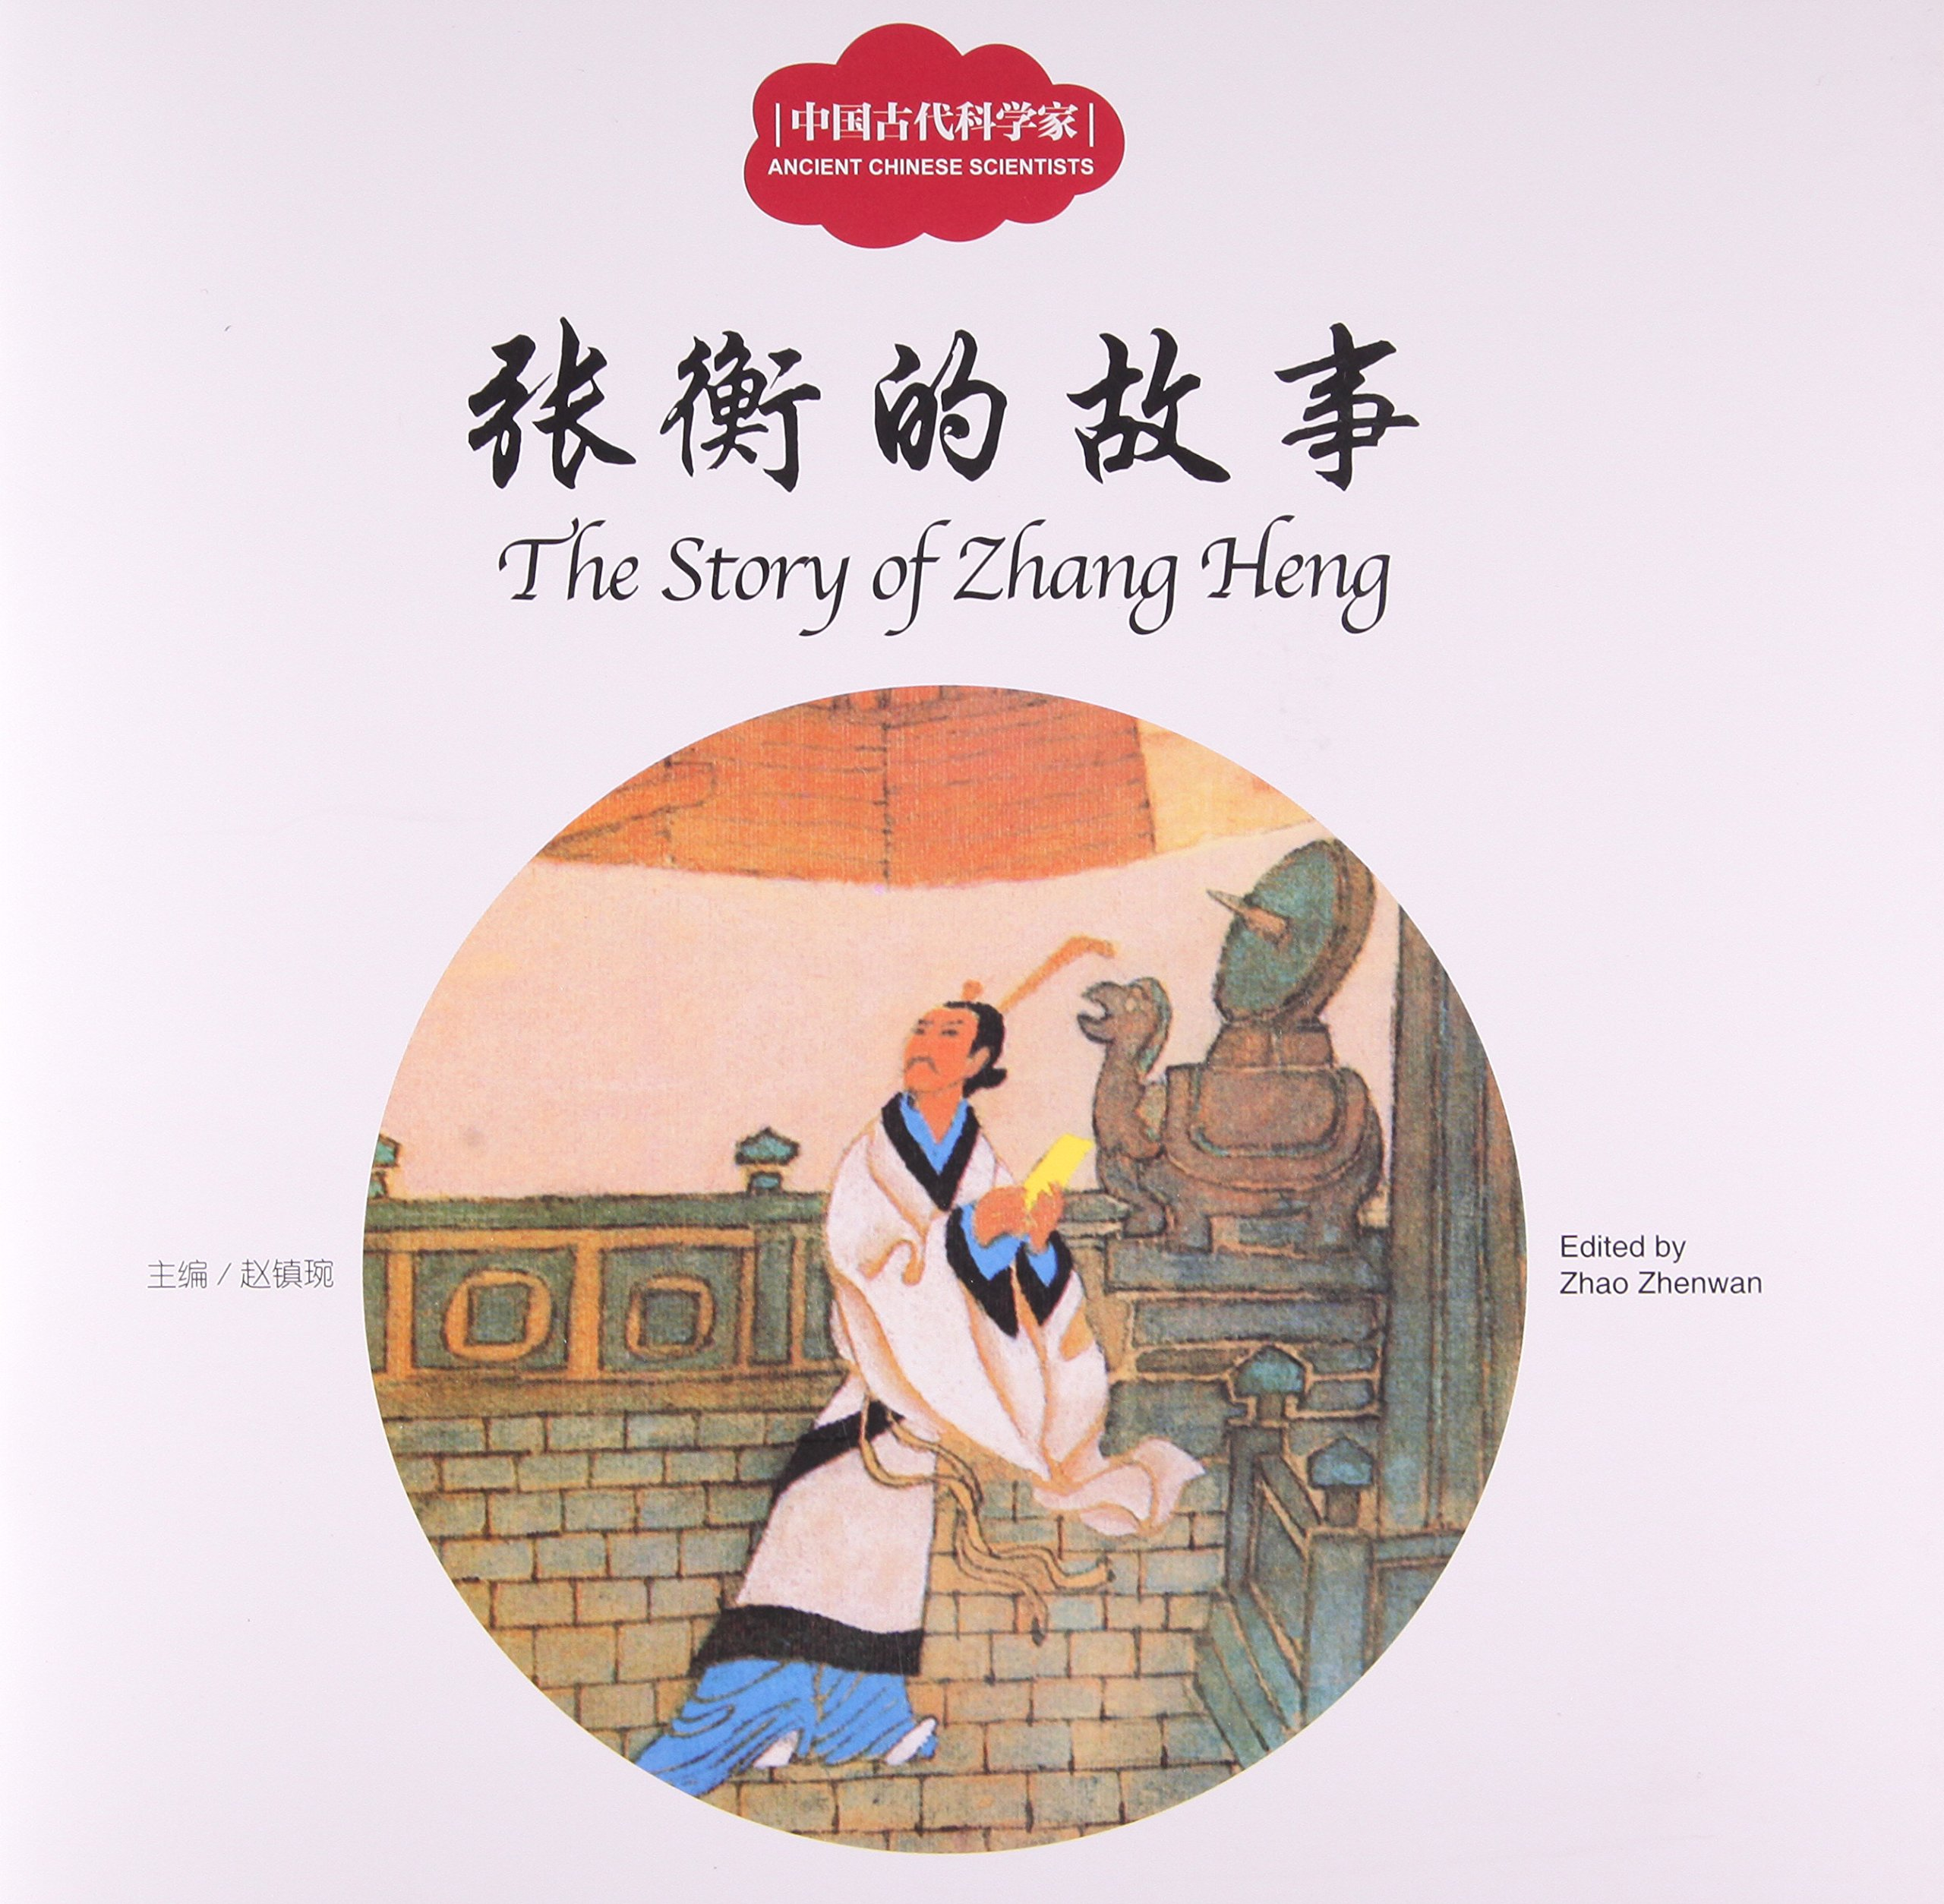 The Story of Zhang Heng - First Books for Early Learning Series